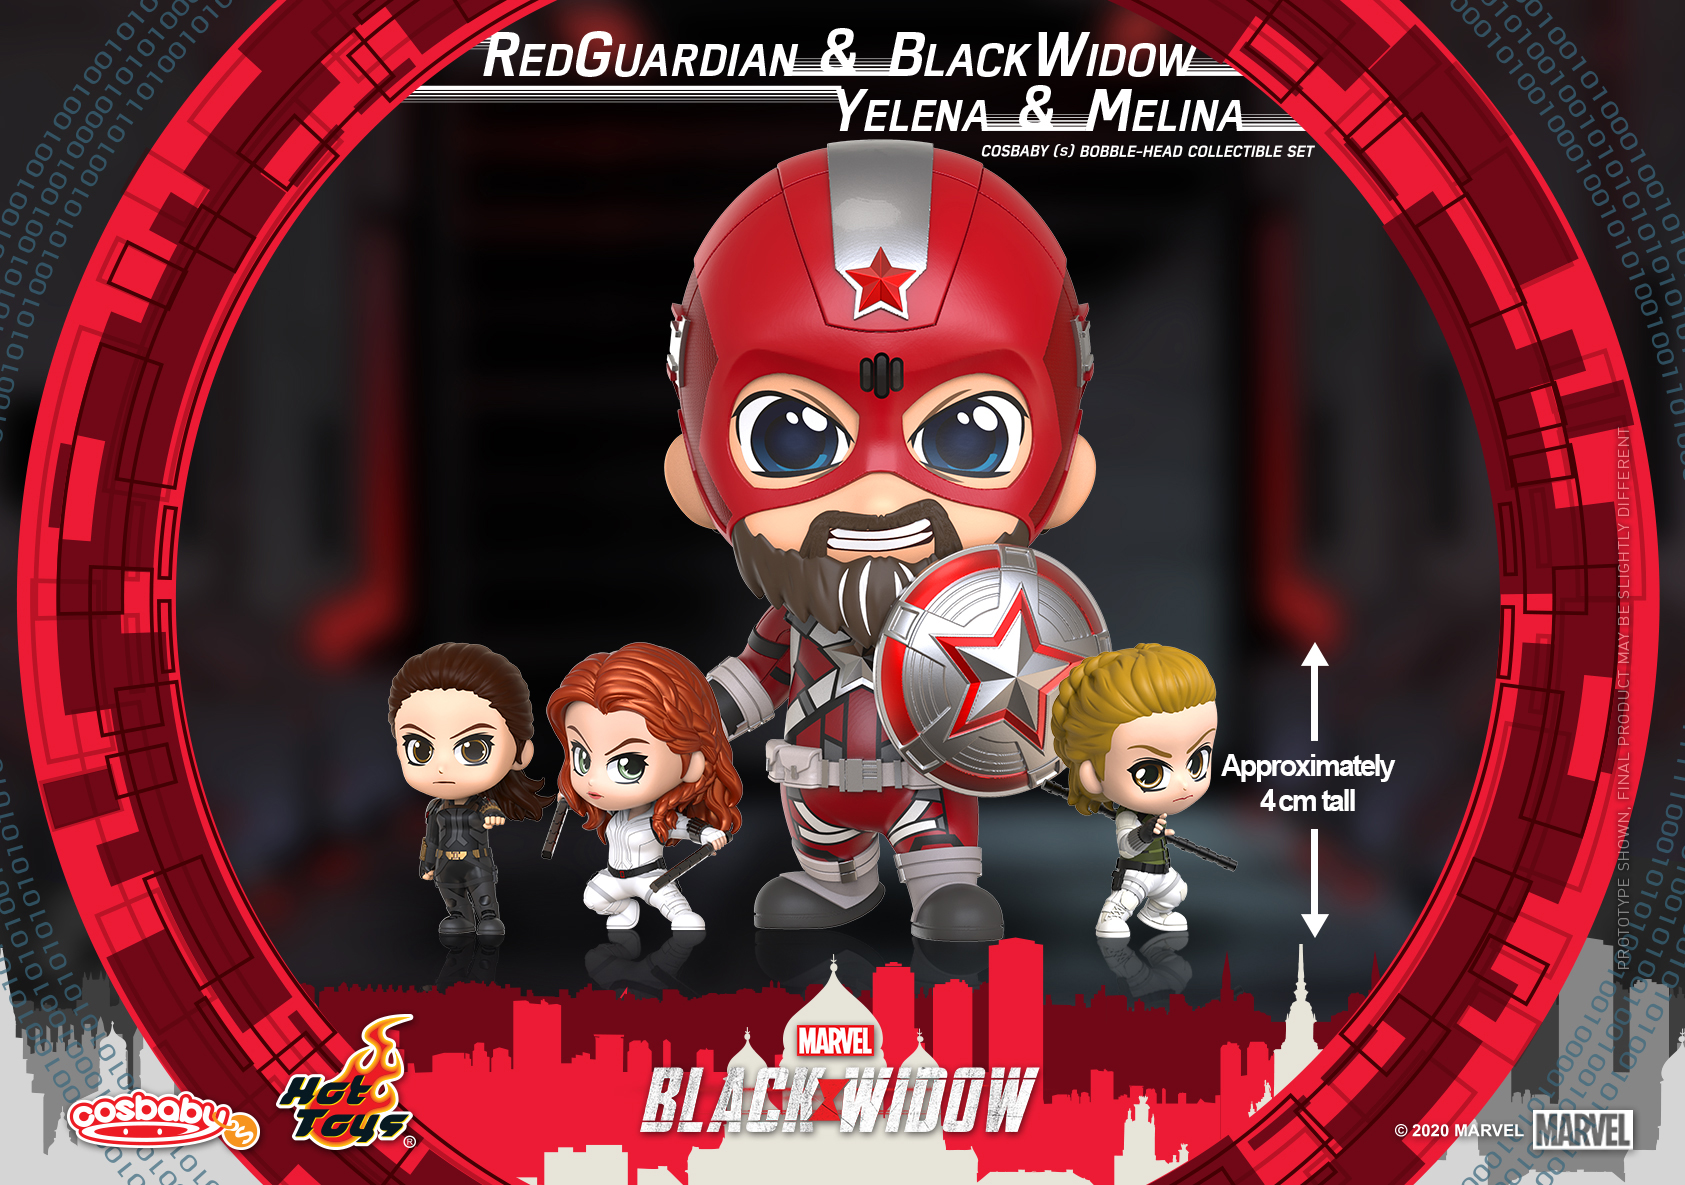 Hot Toys - Black Widow - Red Guardian, Black Widow, Yelena, and Melina Cosbaby (S) Bobble-Head Collectible Set_PR2